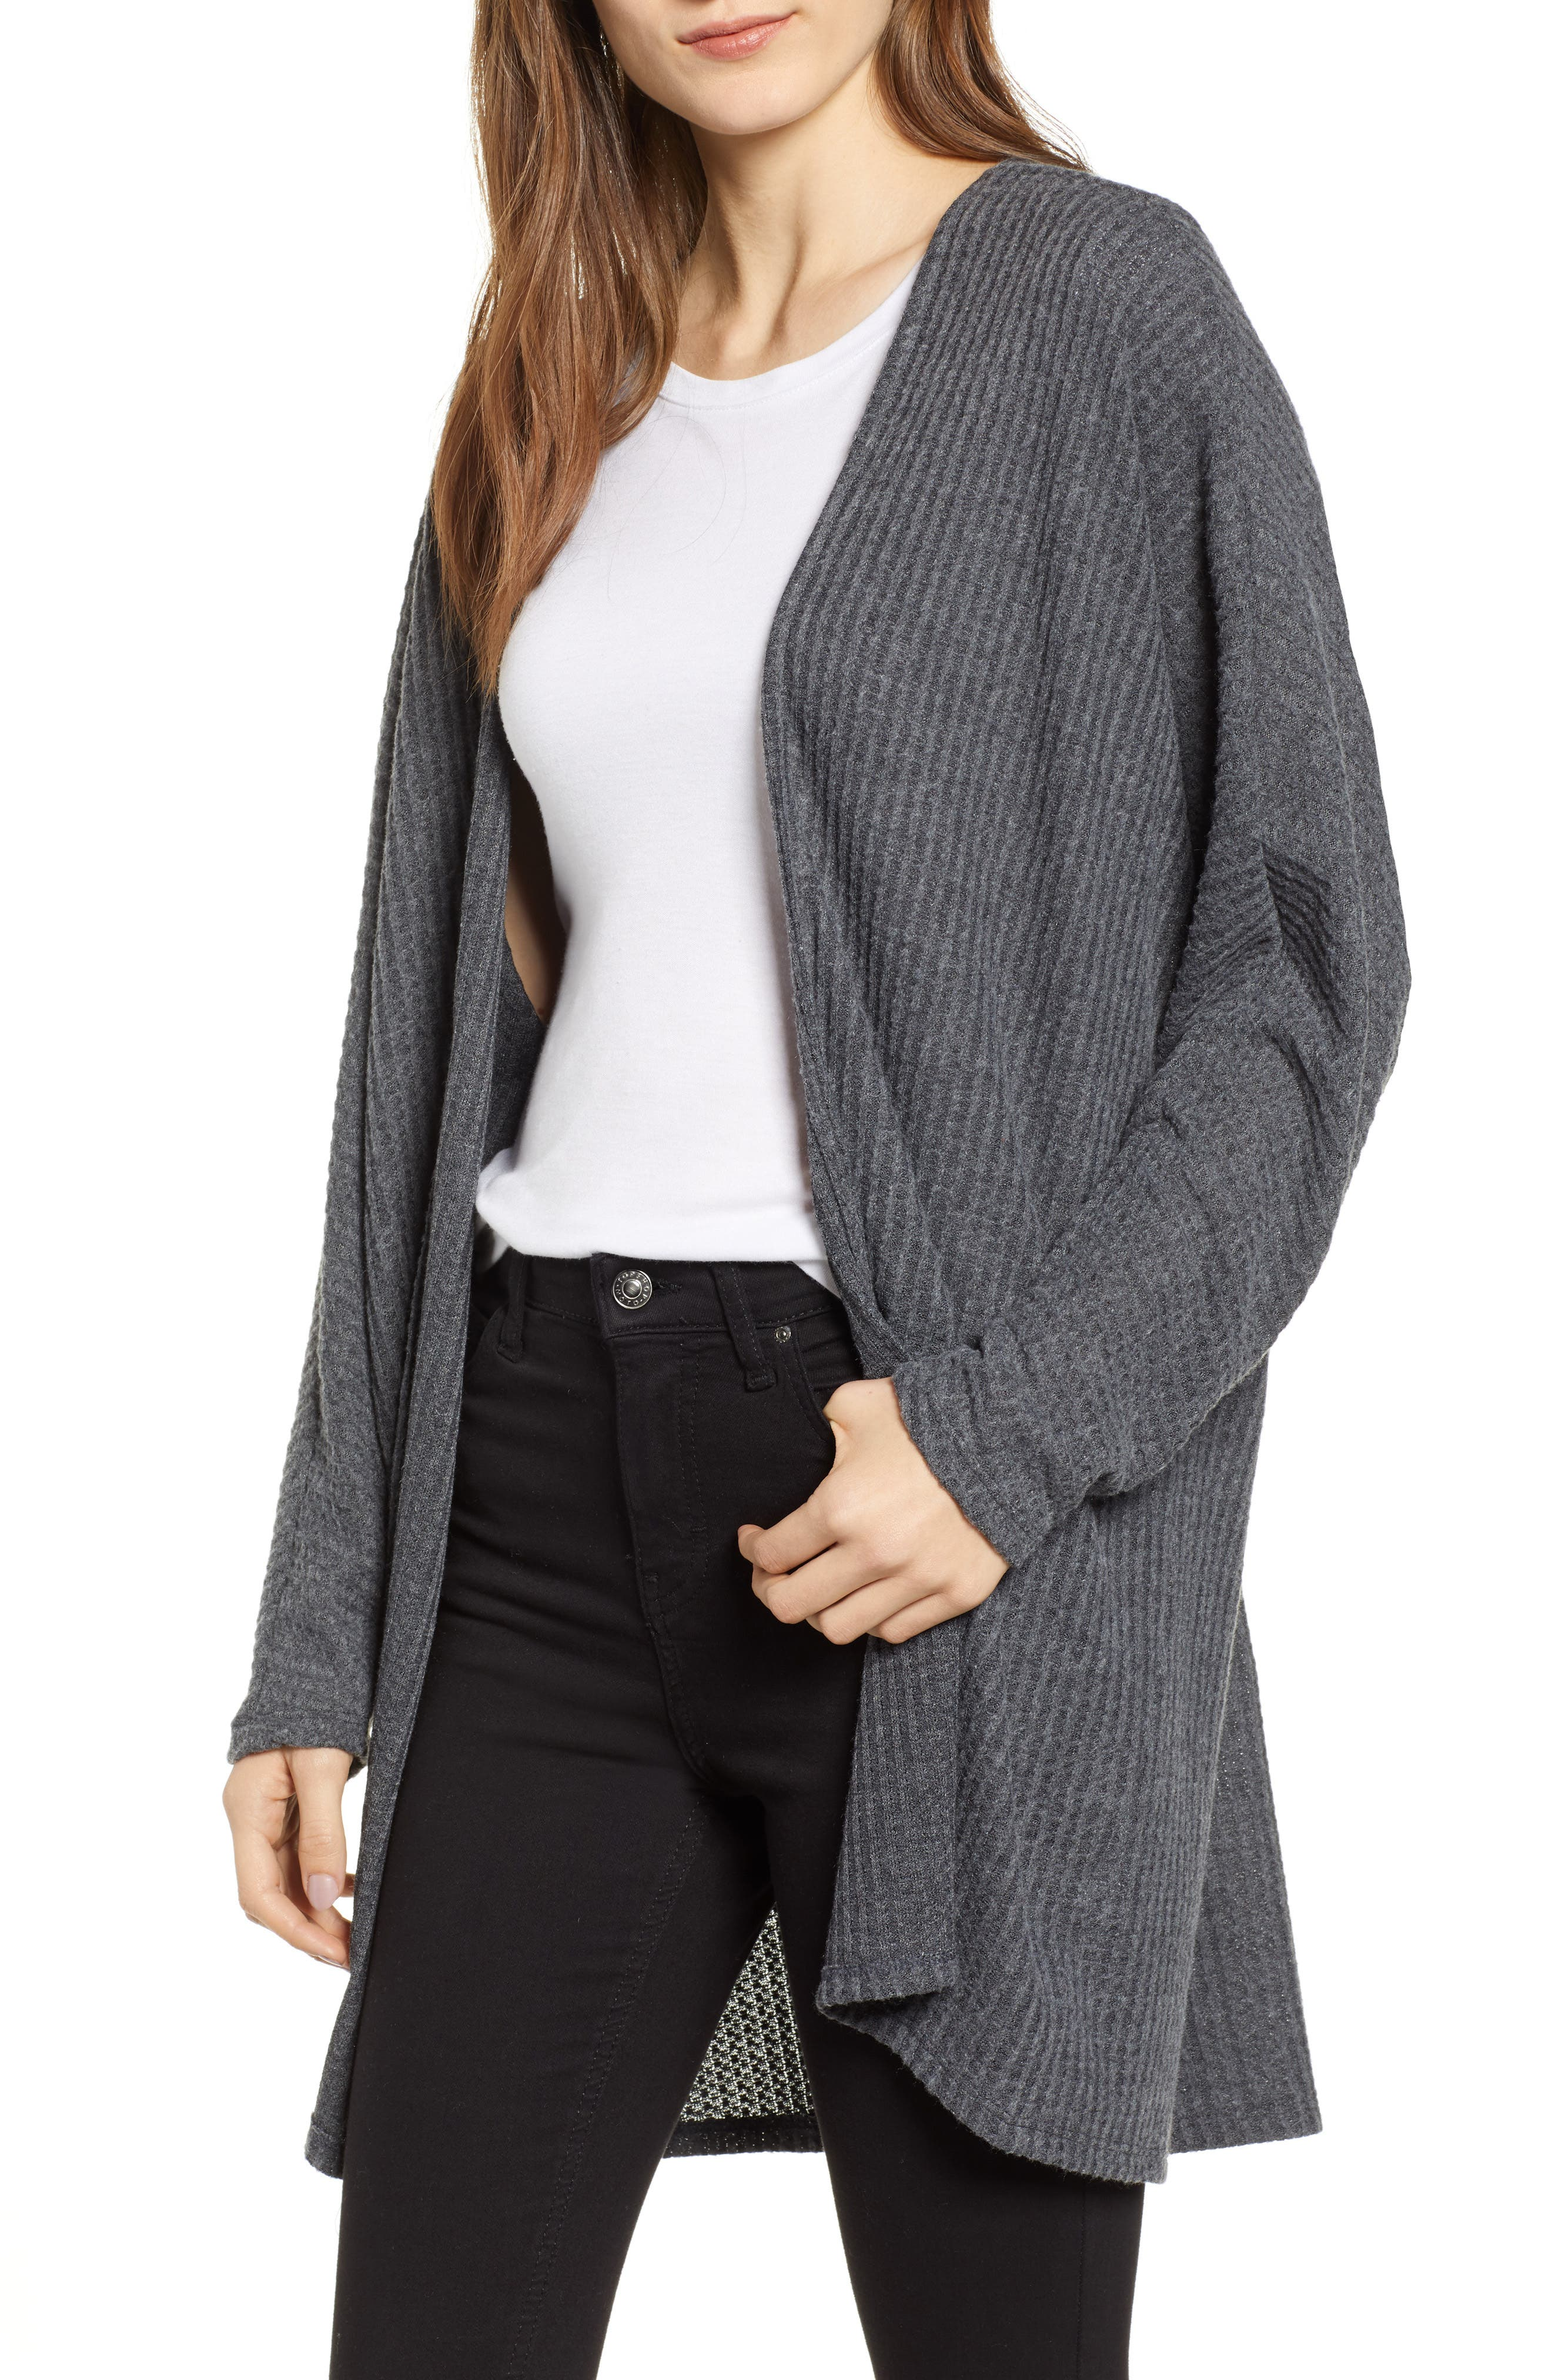 Keep It Casual Thermal Cardigan,                         Main,                         color, CHARCOAL